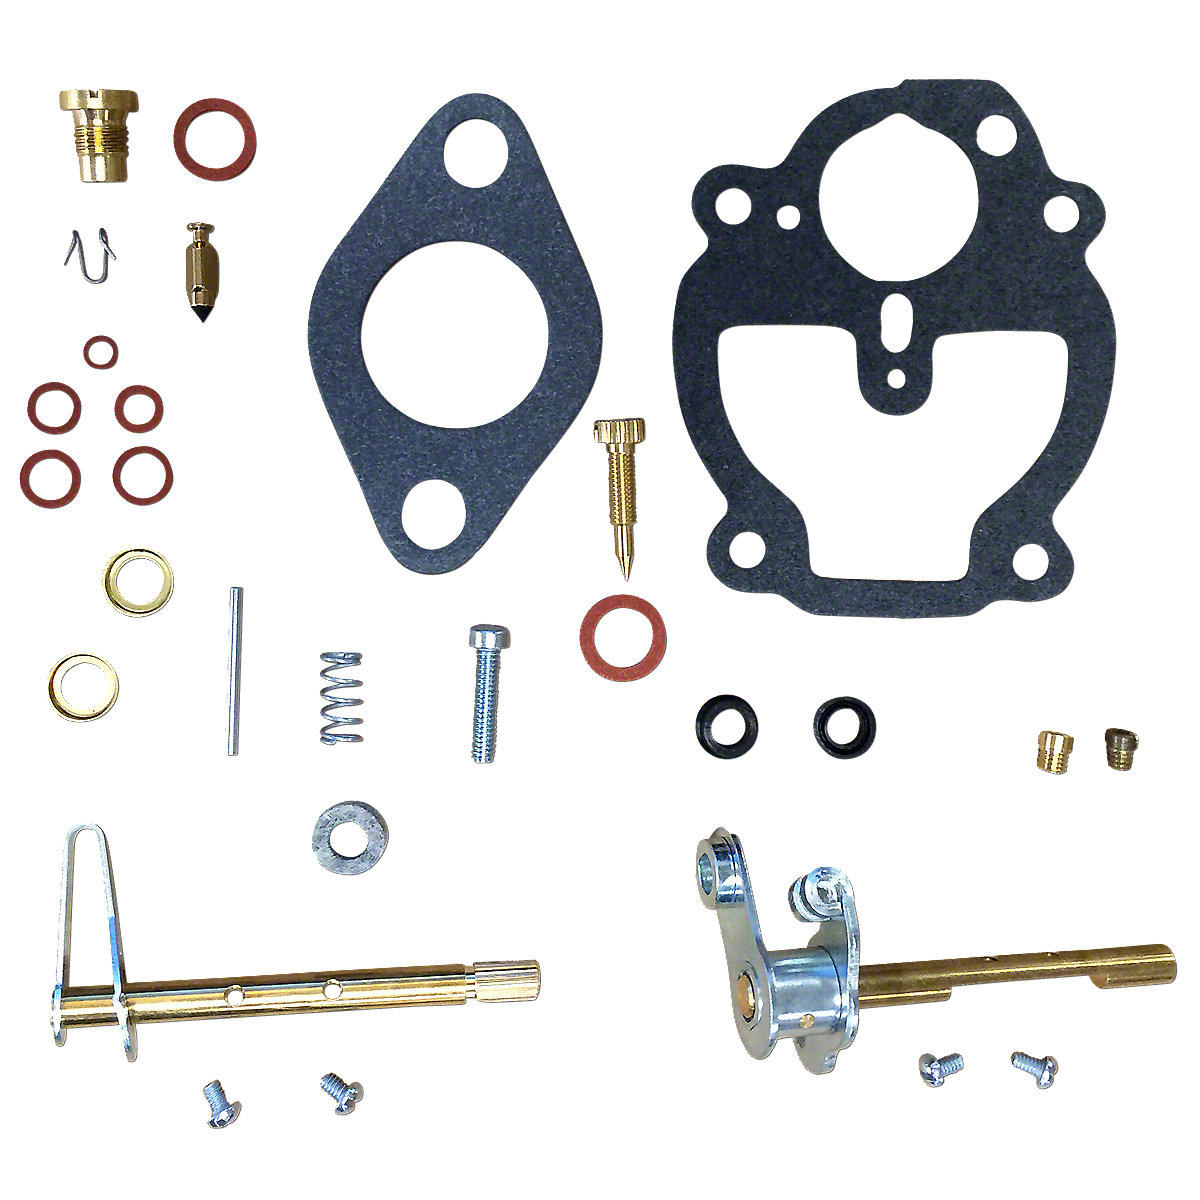 ABC142 Complete Zenith Carburetor Repair Kit